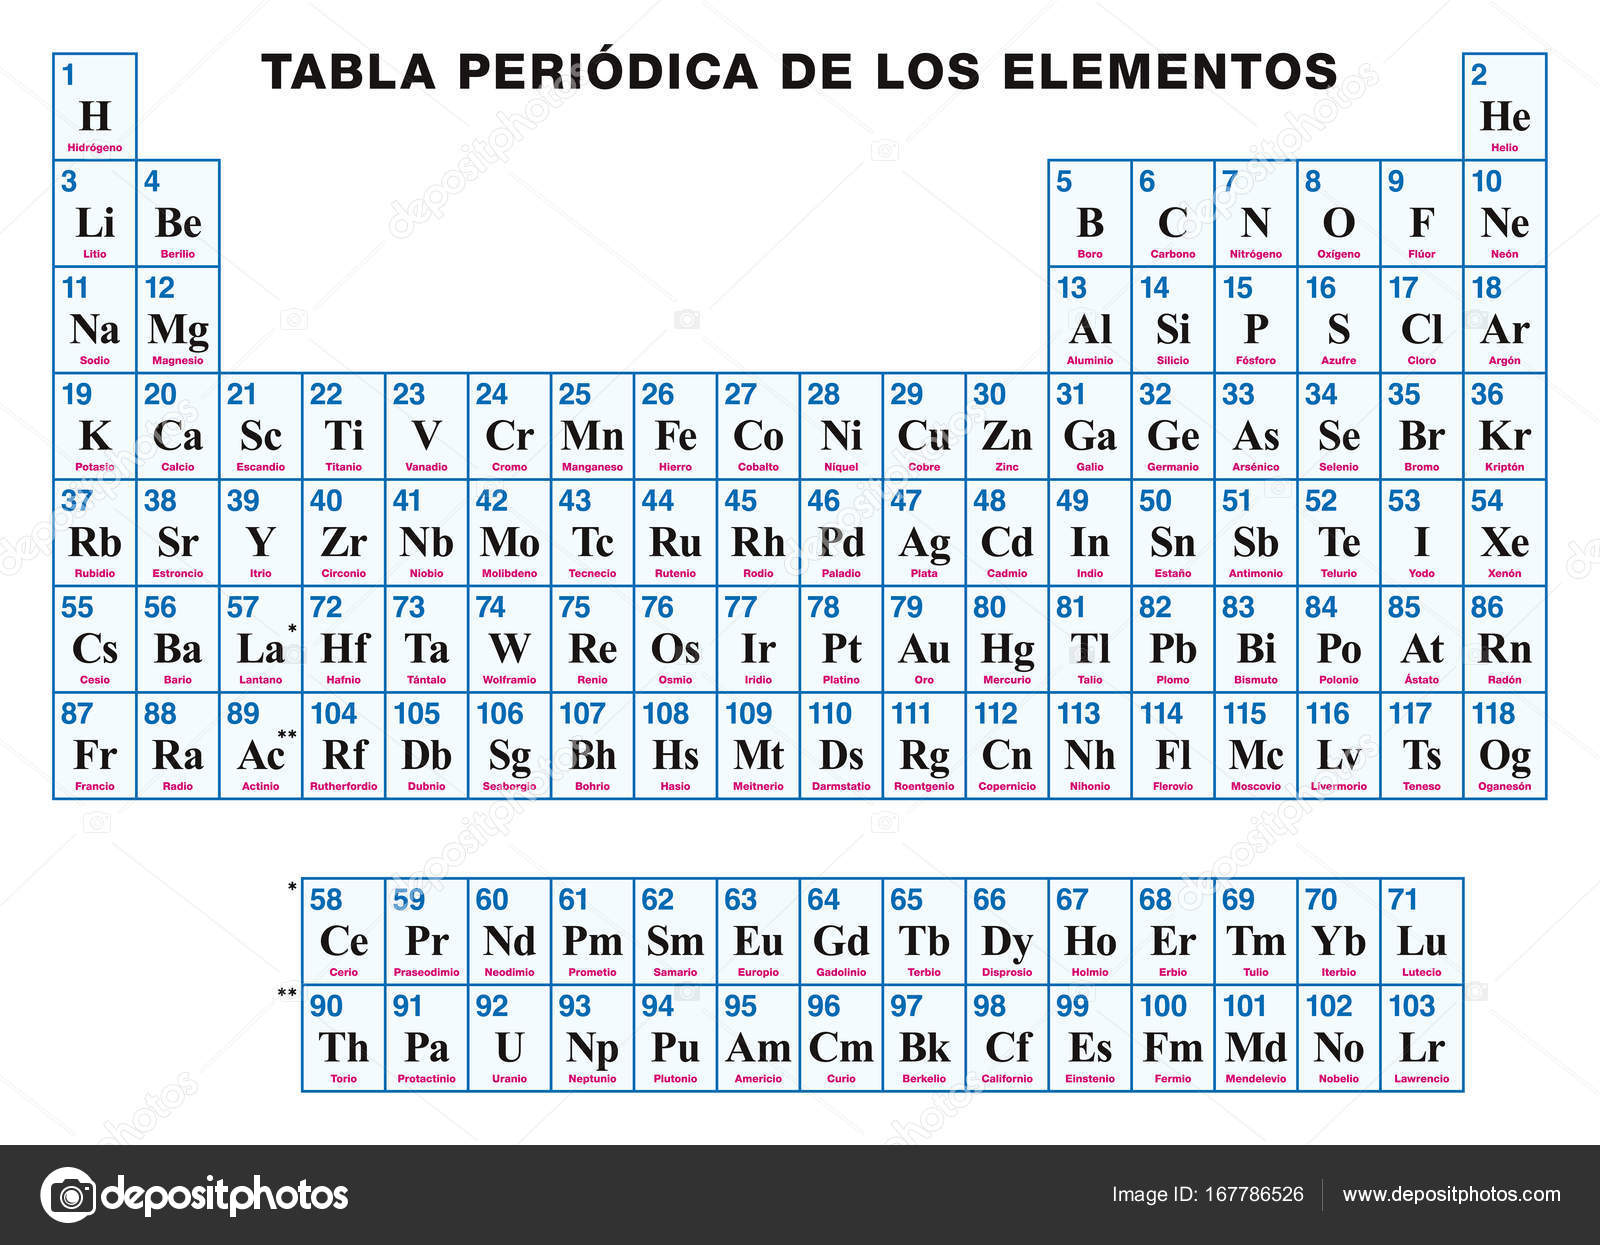 Periodic table of elements n gallery periodic table images periodic table of elements n image collections periodic table images periodic table of elements n gallery gamestrikefo Image collections